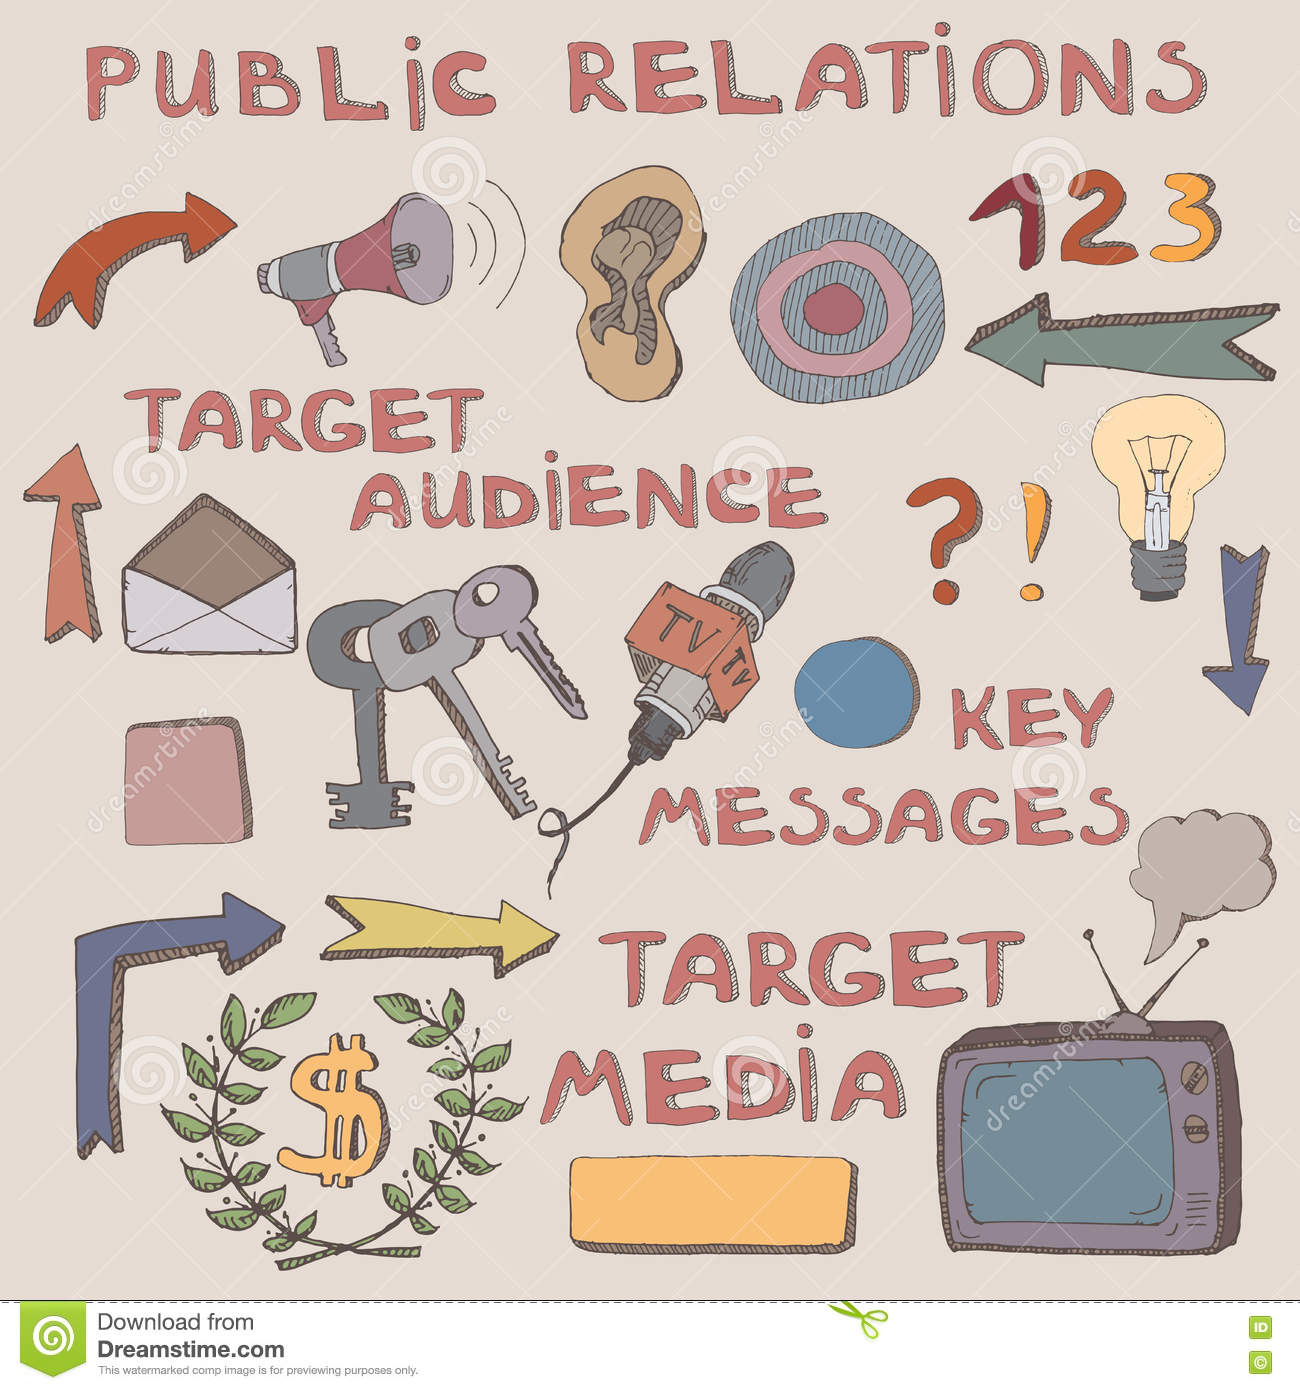 Color hand drawn sketch of public relations signs and symbols color hand drawn sketch of public relations signs and symbols buycottarizona Image collections